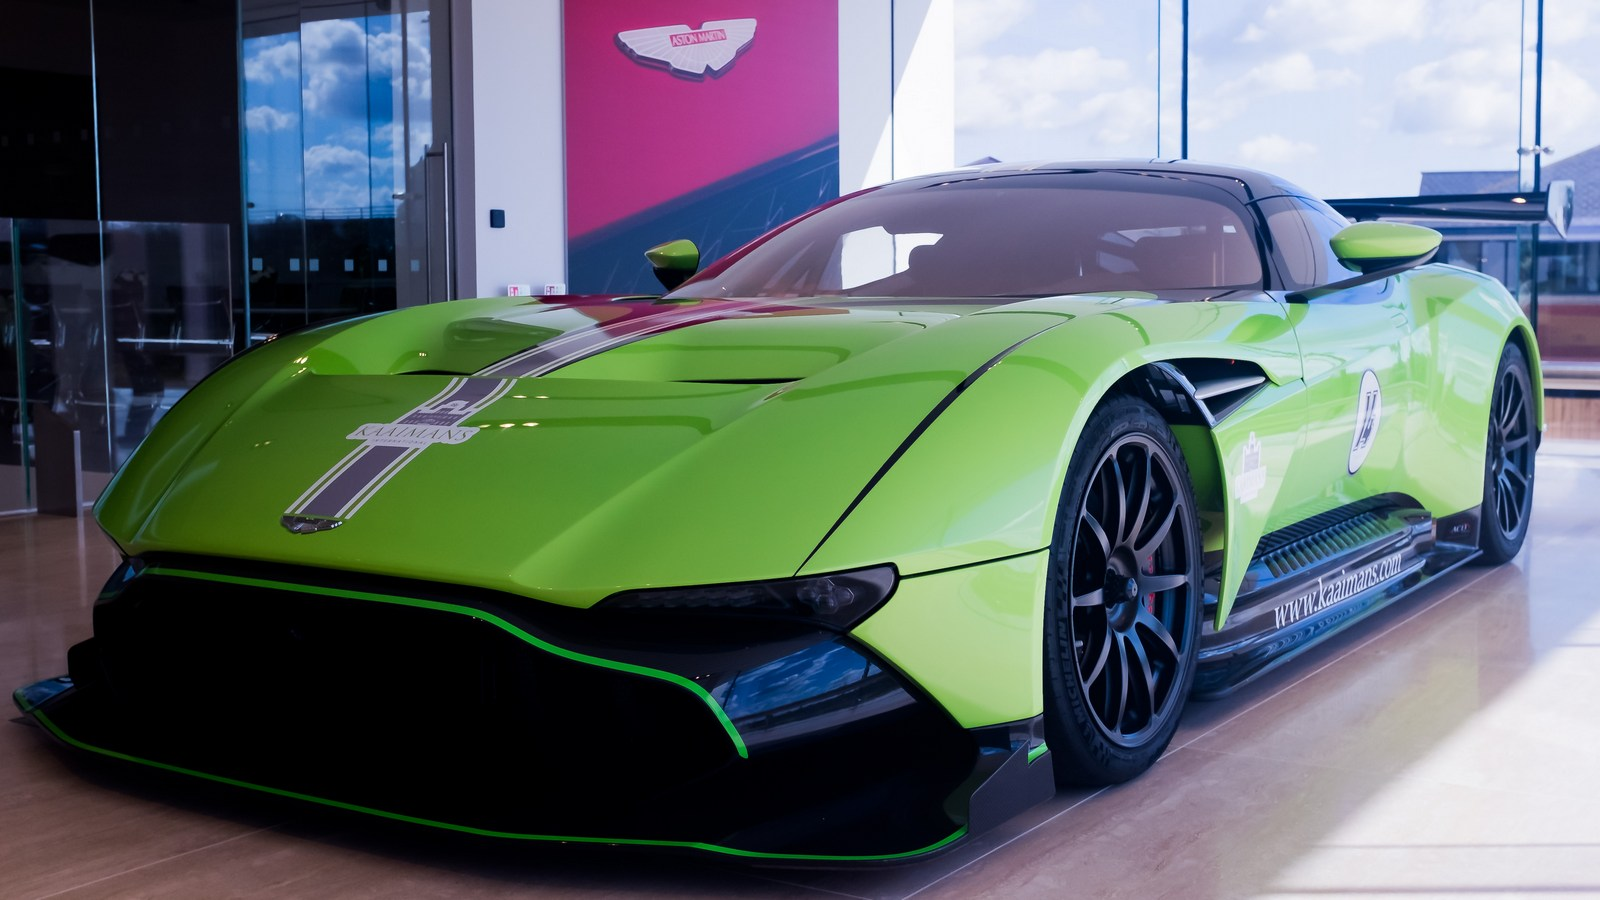 Lambo Green Aston Martin Vulcan Can Be Yours For R50 Million